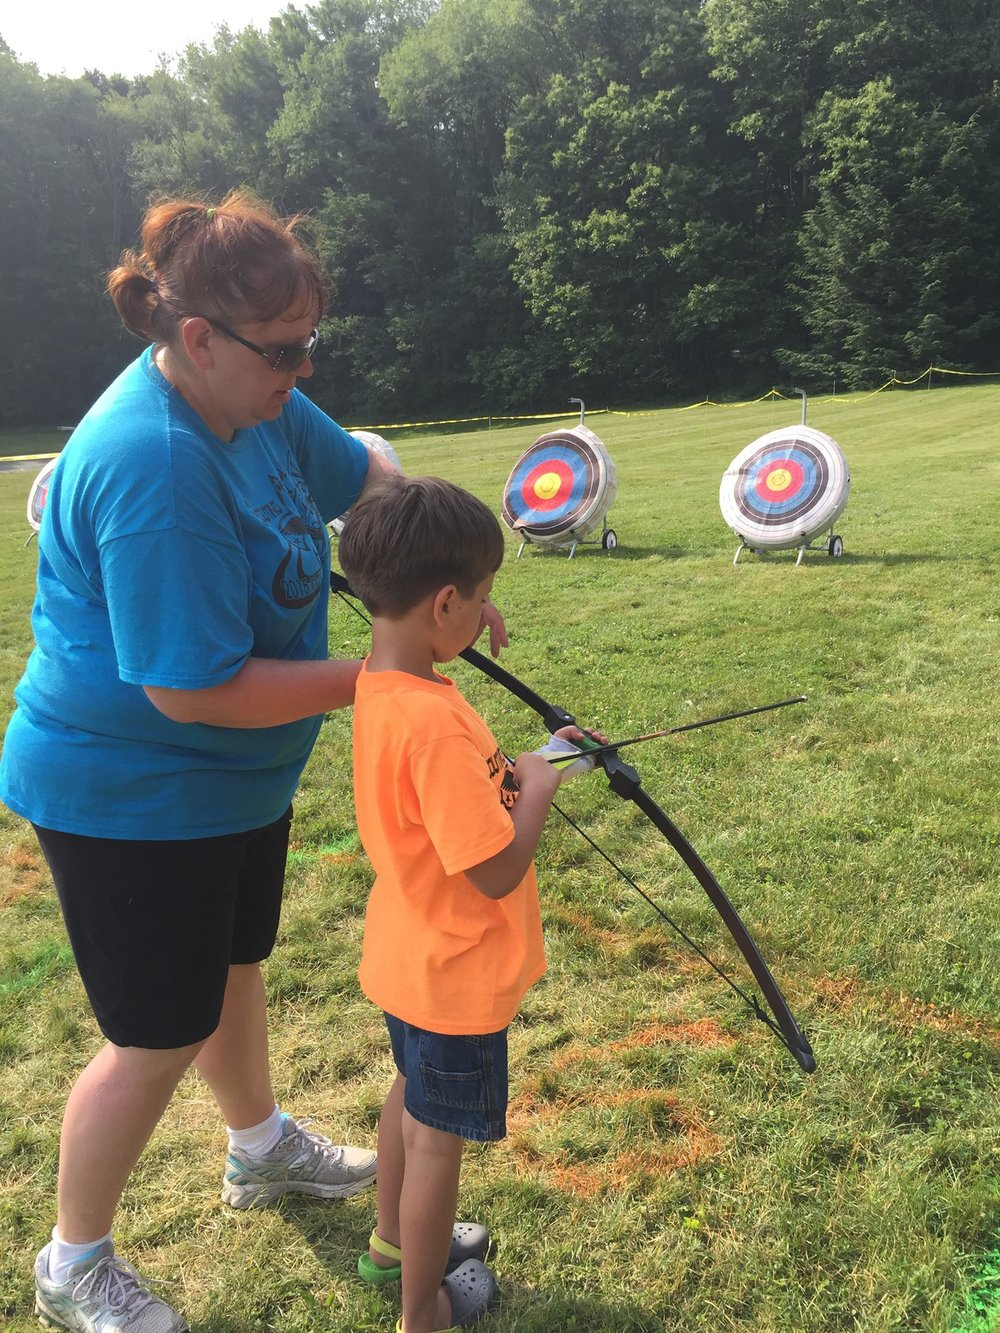 My youngest sometimes struggles with both fine and gross motor skills, but what could be more fun than becoming an archery master in training?